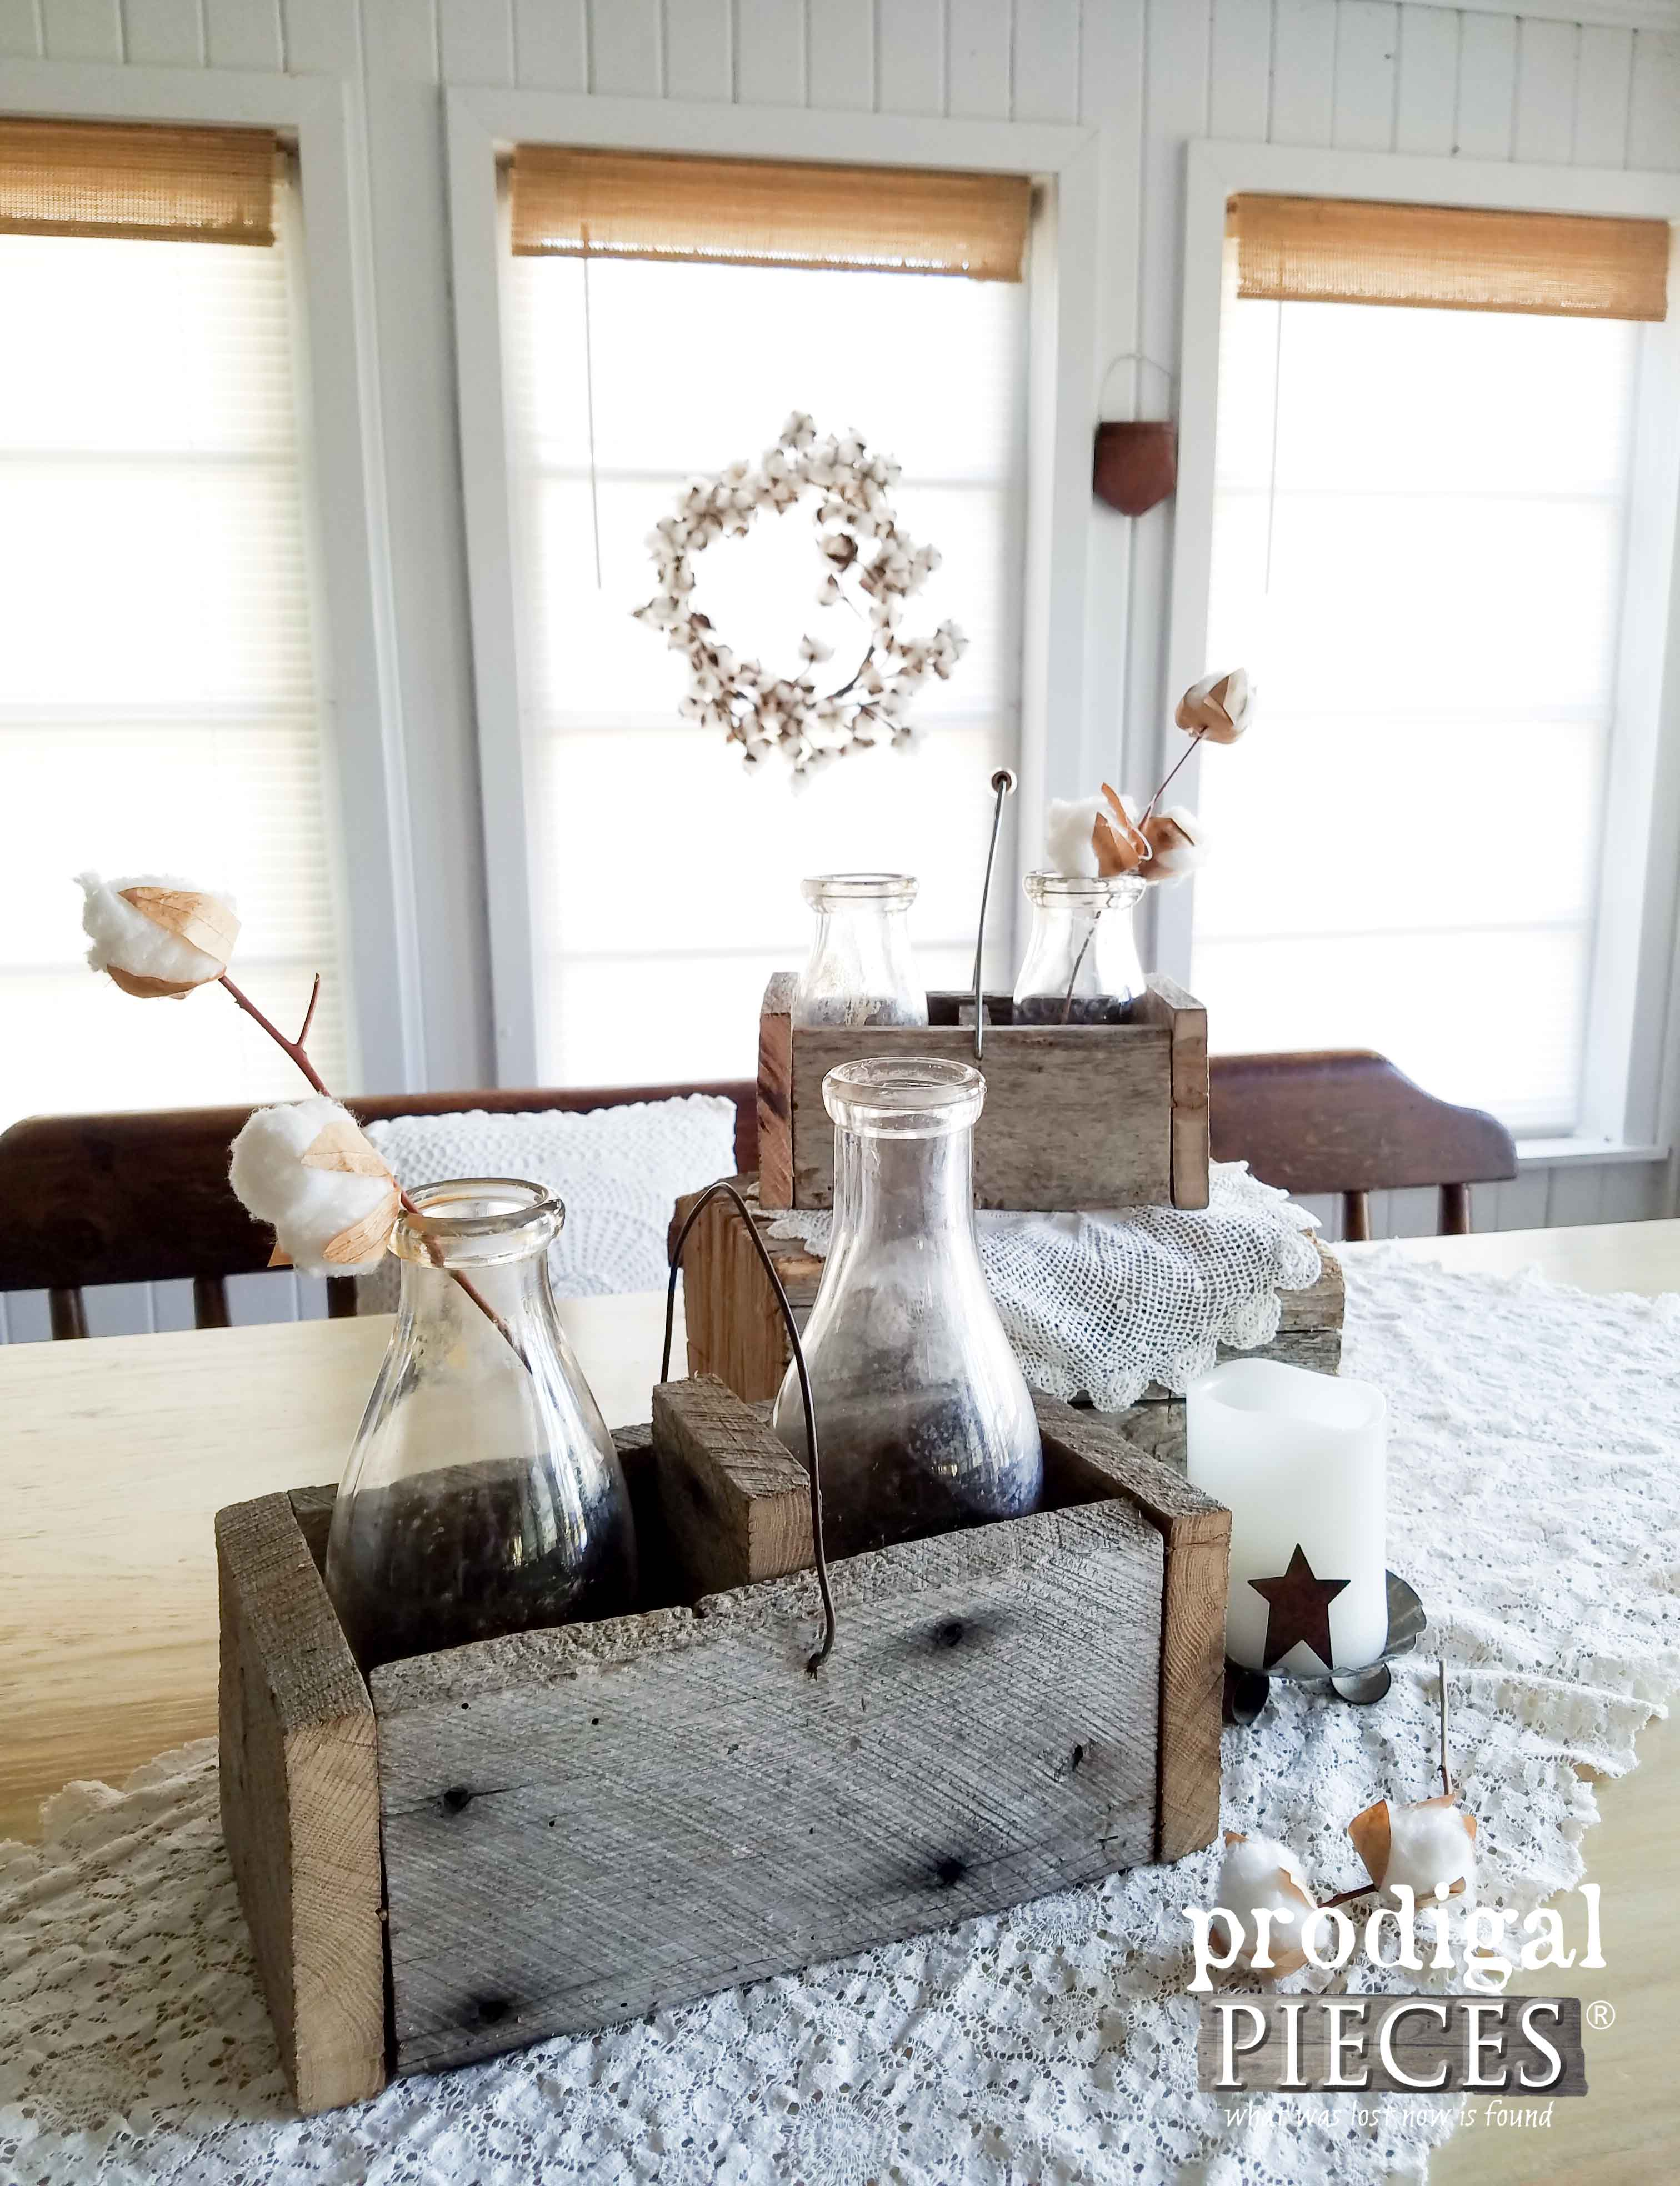 Wooden Caddy Tutorial ~ DIY Farmhouse Style - Prodigal Pieces